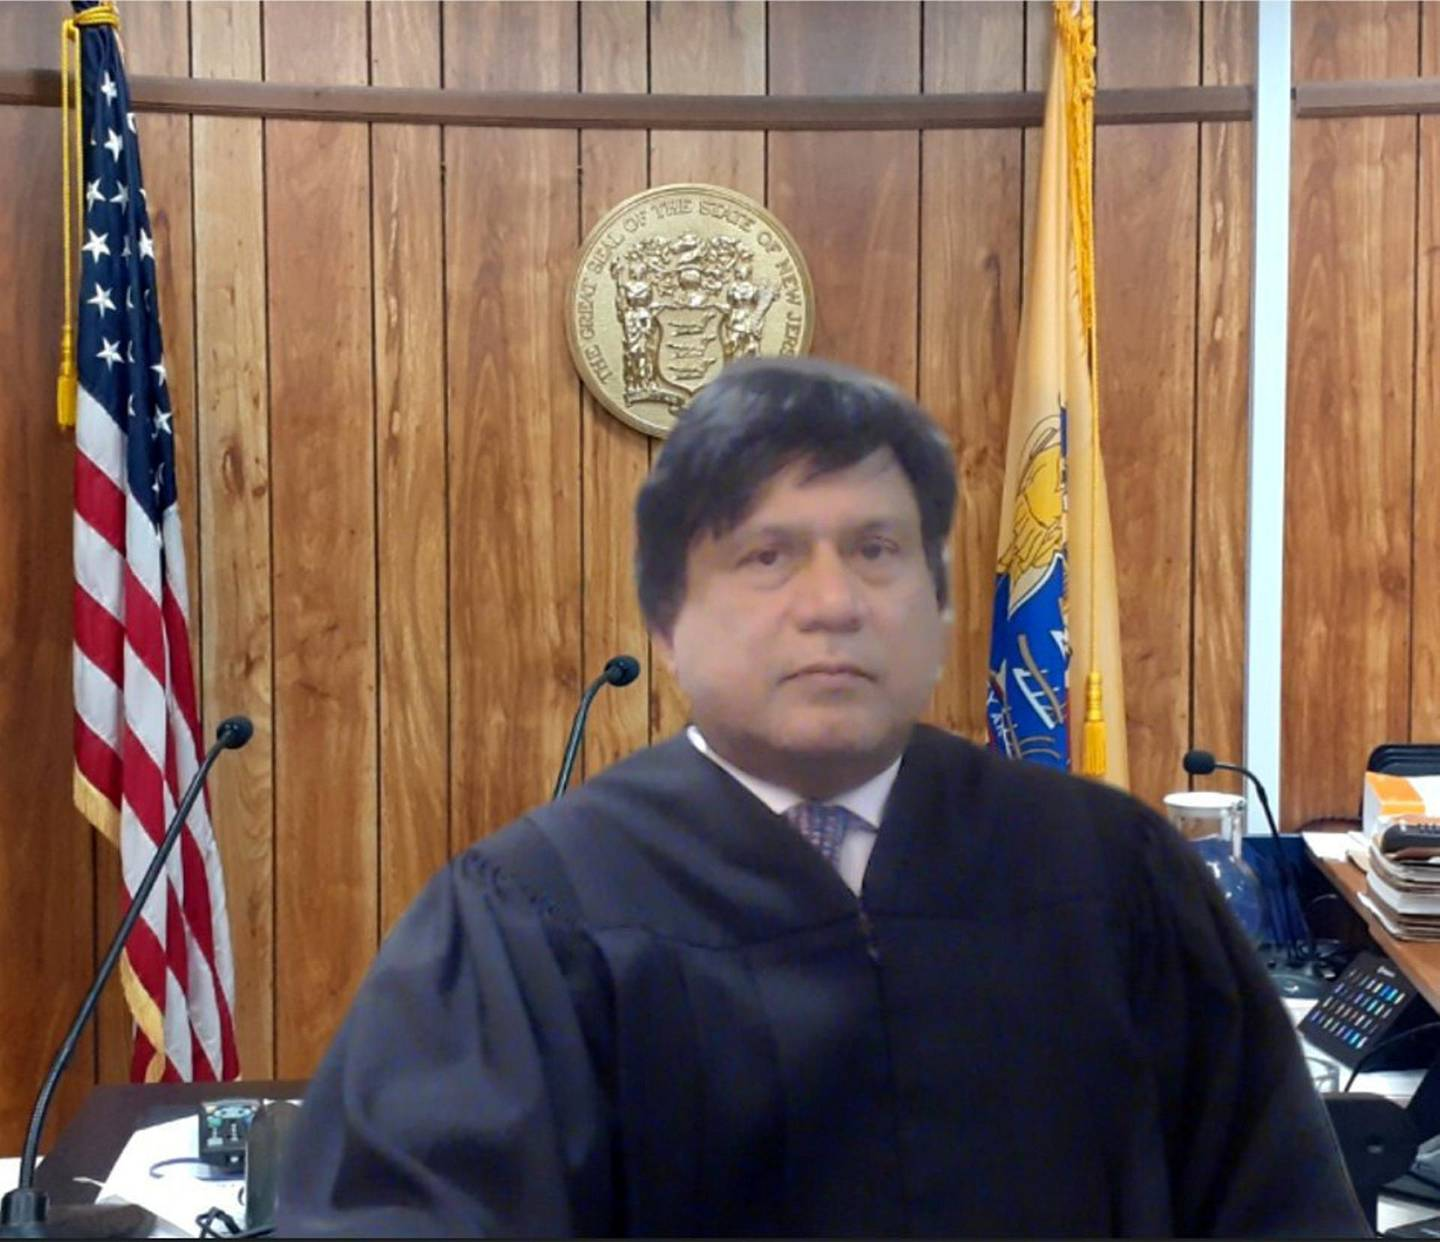 Superior Court Judge Sohail Mohammed tapped into his electrical engineering and technology background from @NJIT to help attorneys adapt to the virtual courtrooms the NJ Judiciary is now using during the #COVID19 pandemic. courtesy: New Jersey Courts twitter account